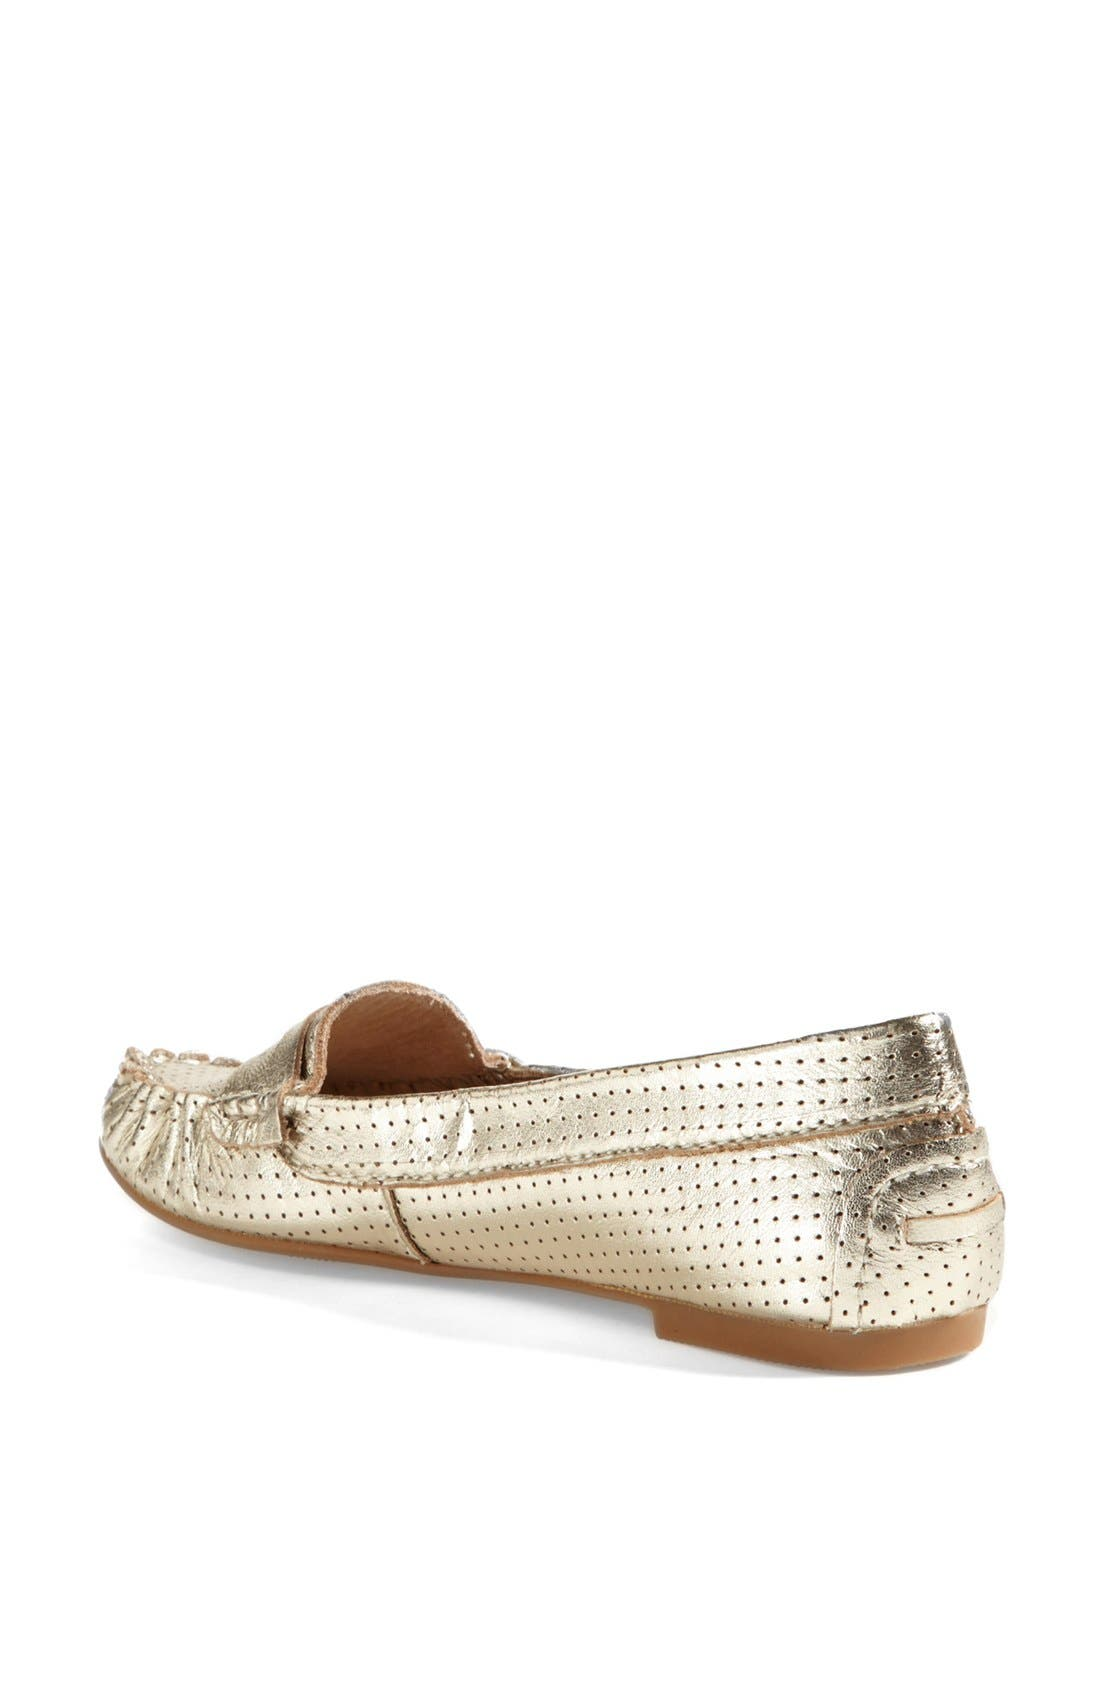 Alternate Image 2  - Steve Madden 'Murphey' Leather Flat